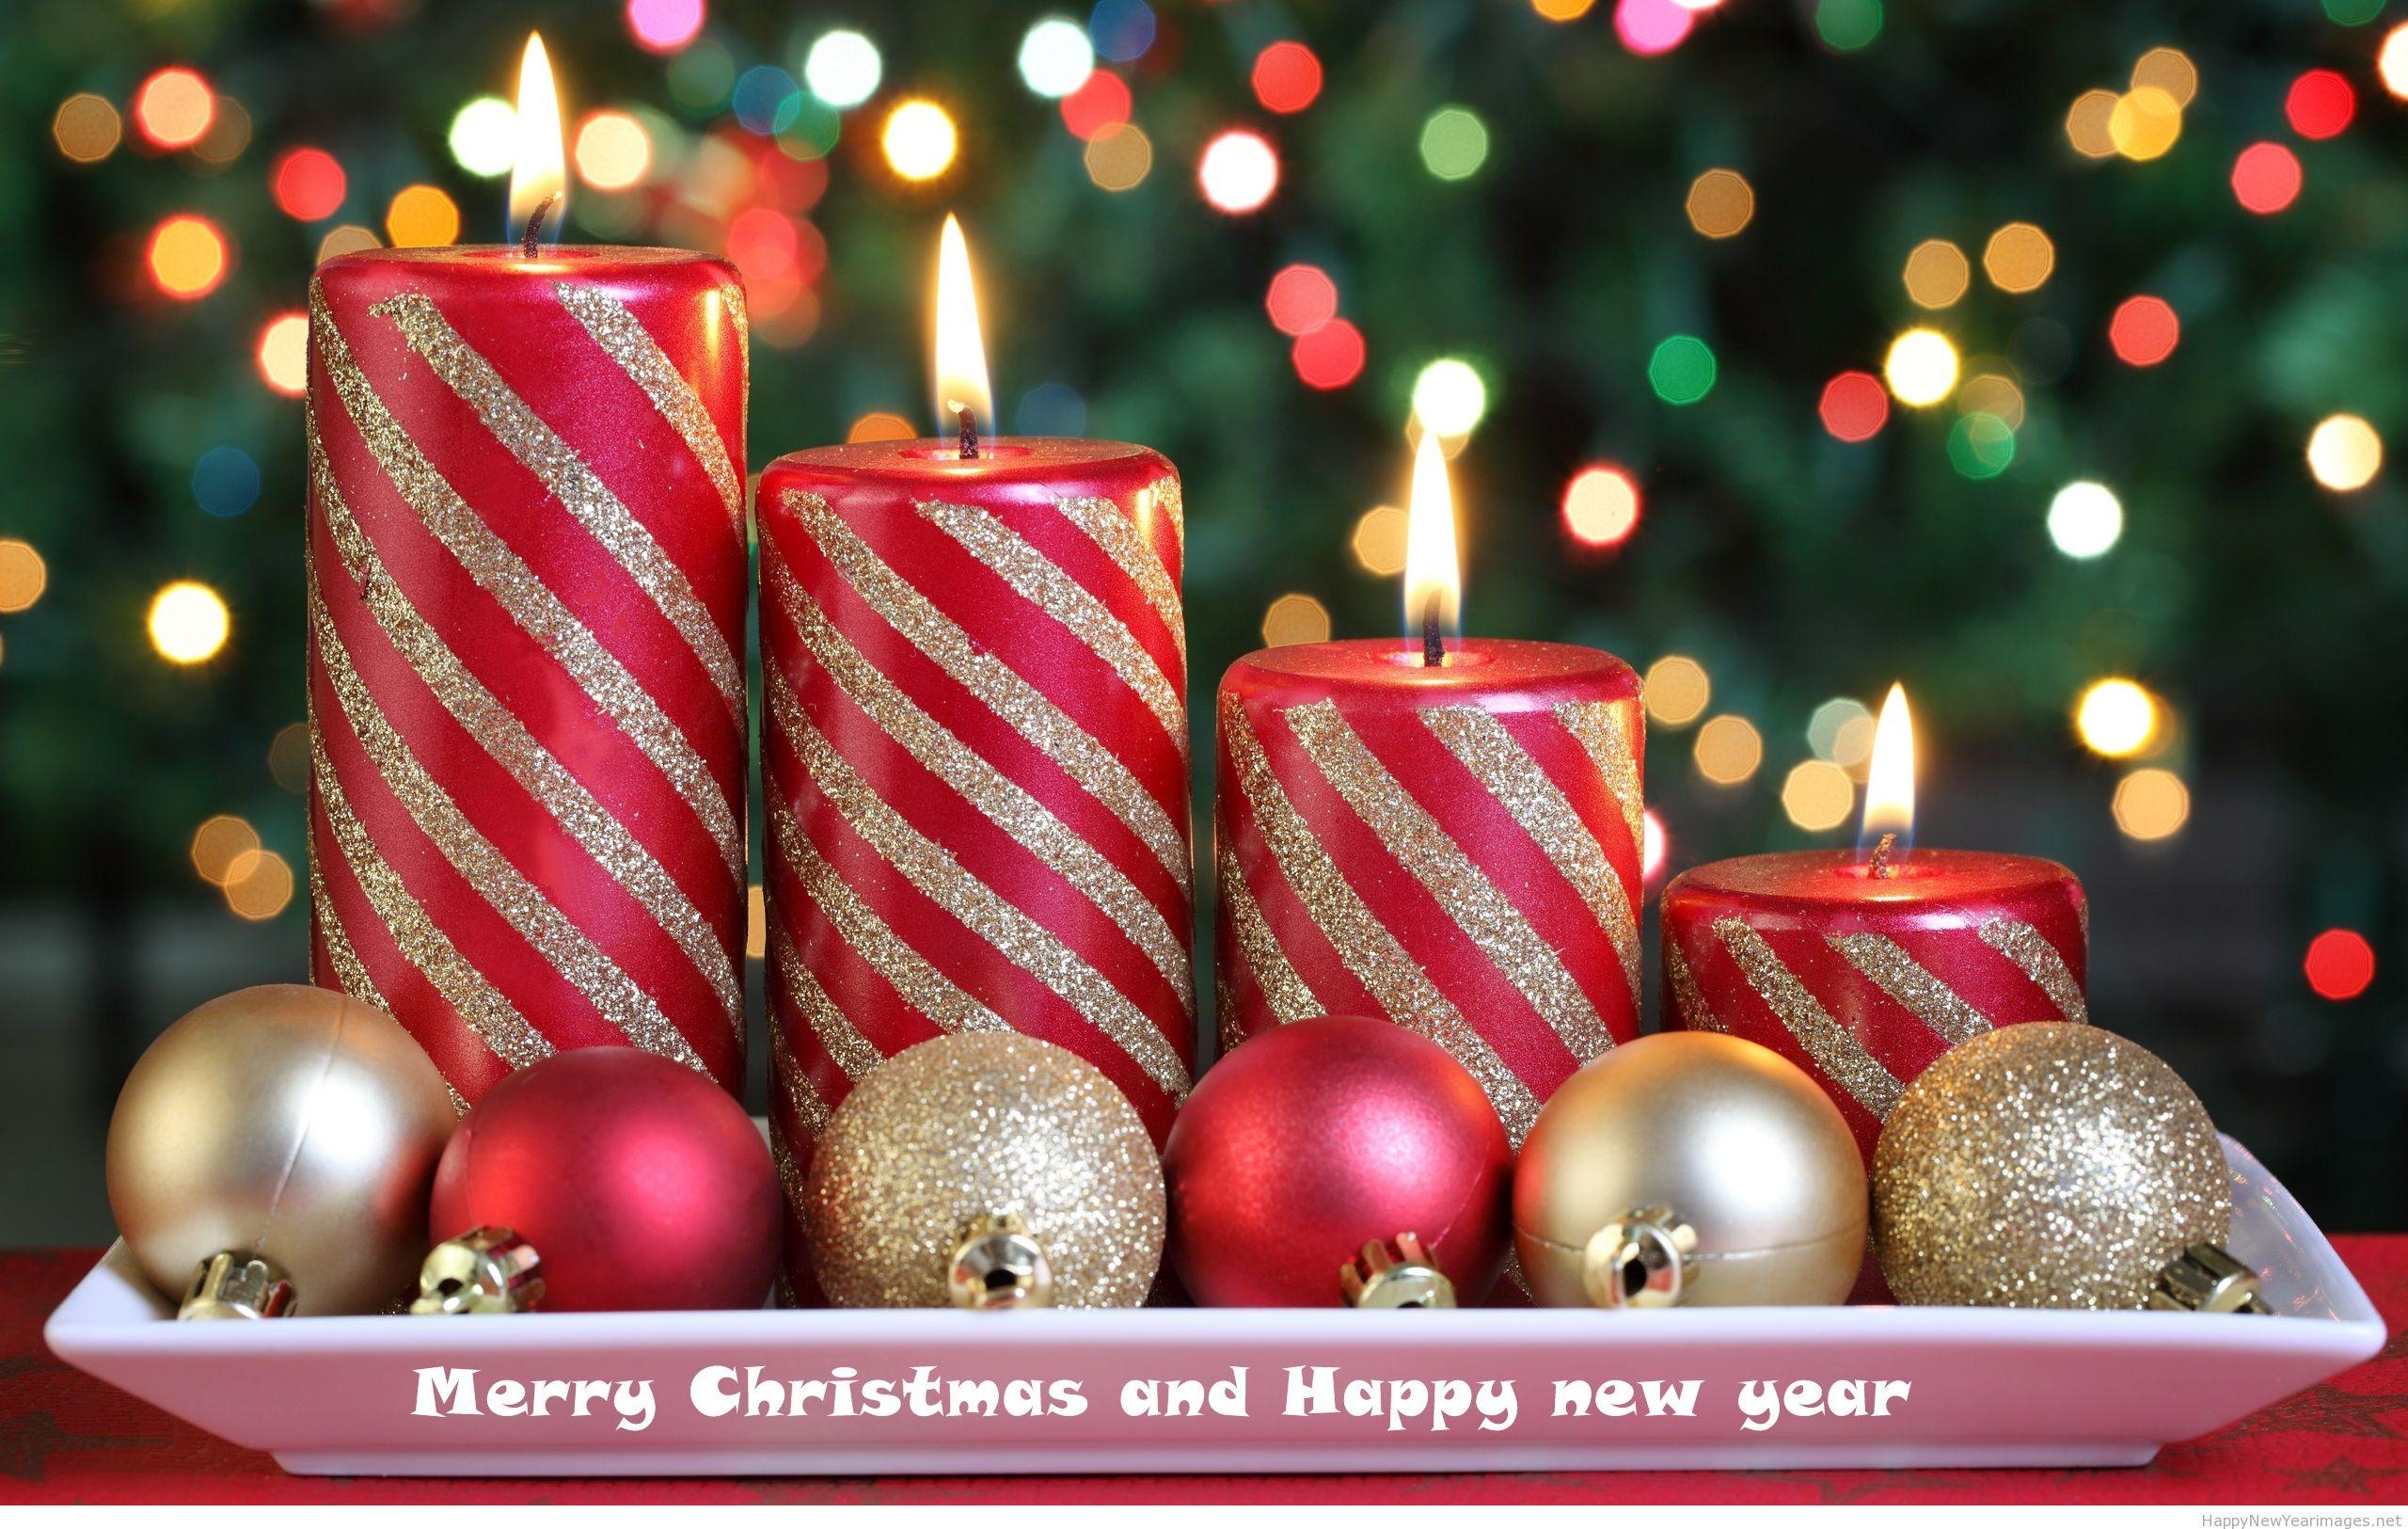 Wallpaper download new year 2015 - Merry Christmas And Happy New Year Candle Wallpaper 2014 2015 Download